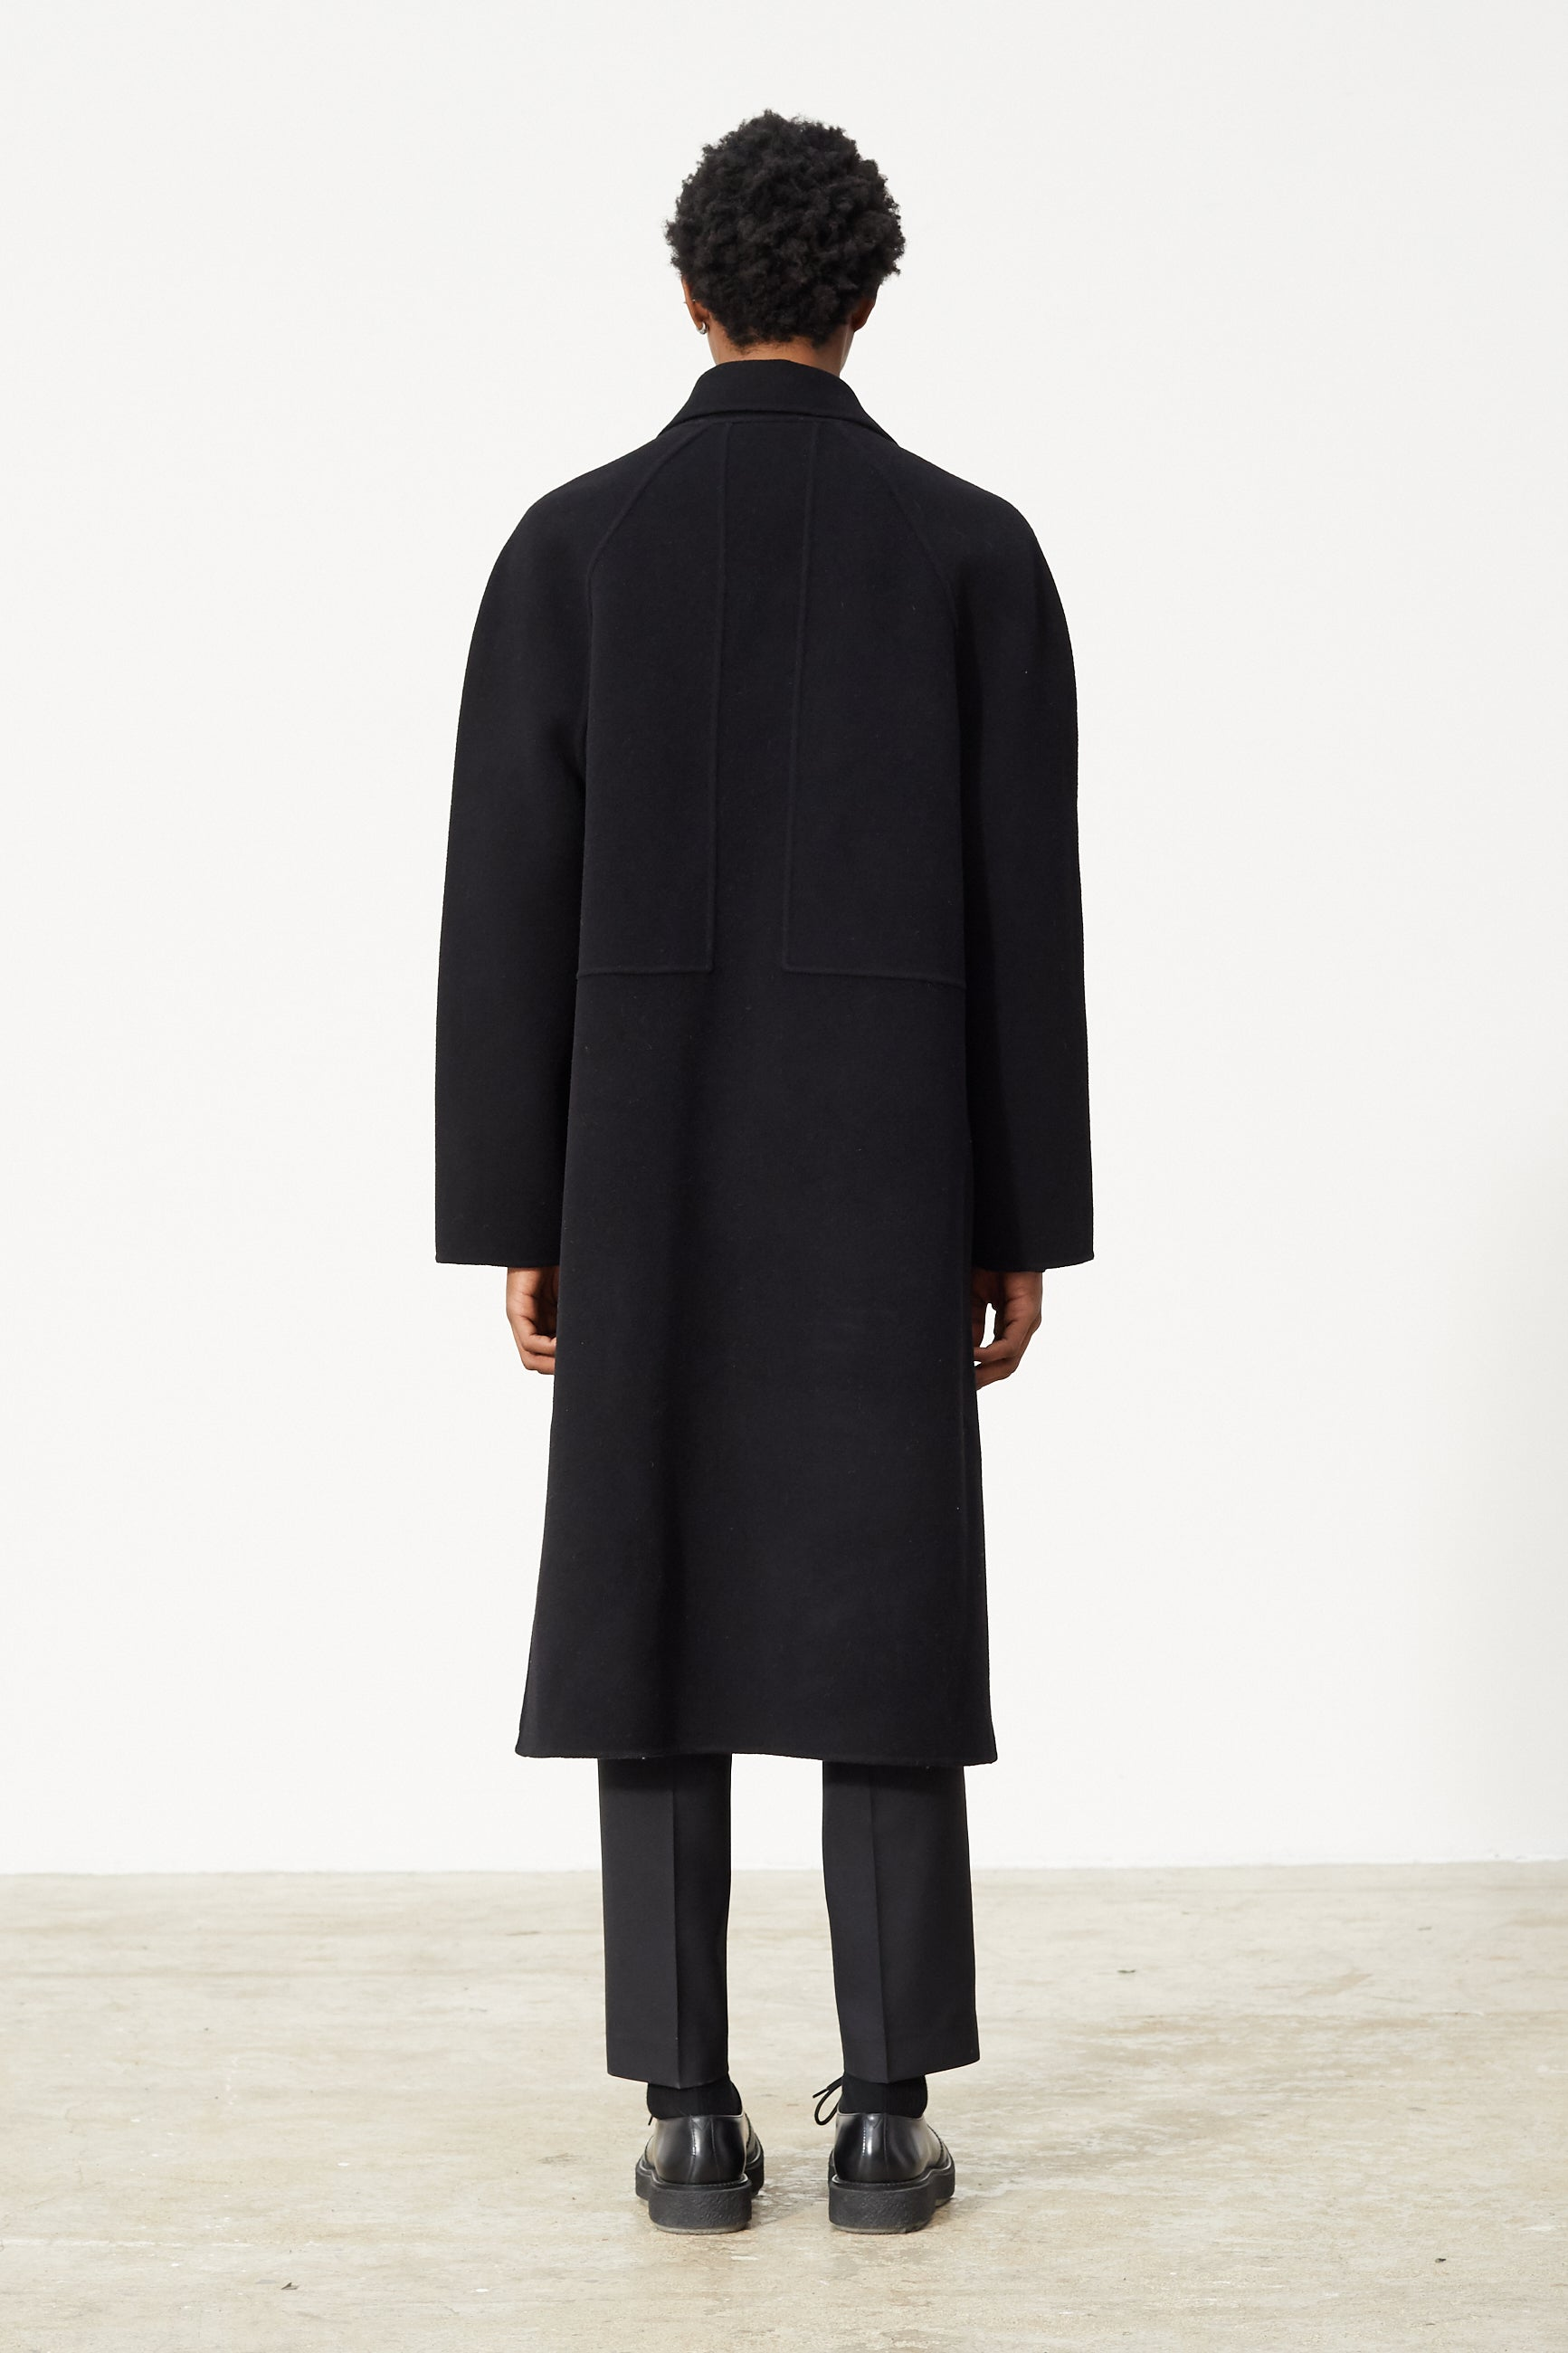 Études Venus Black Coat 2